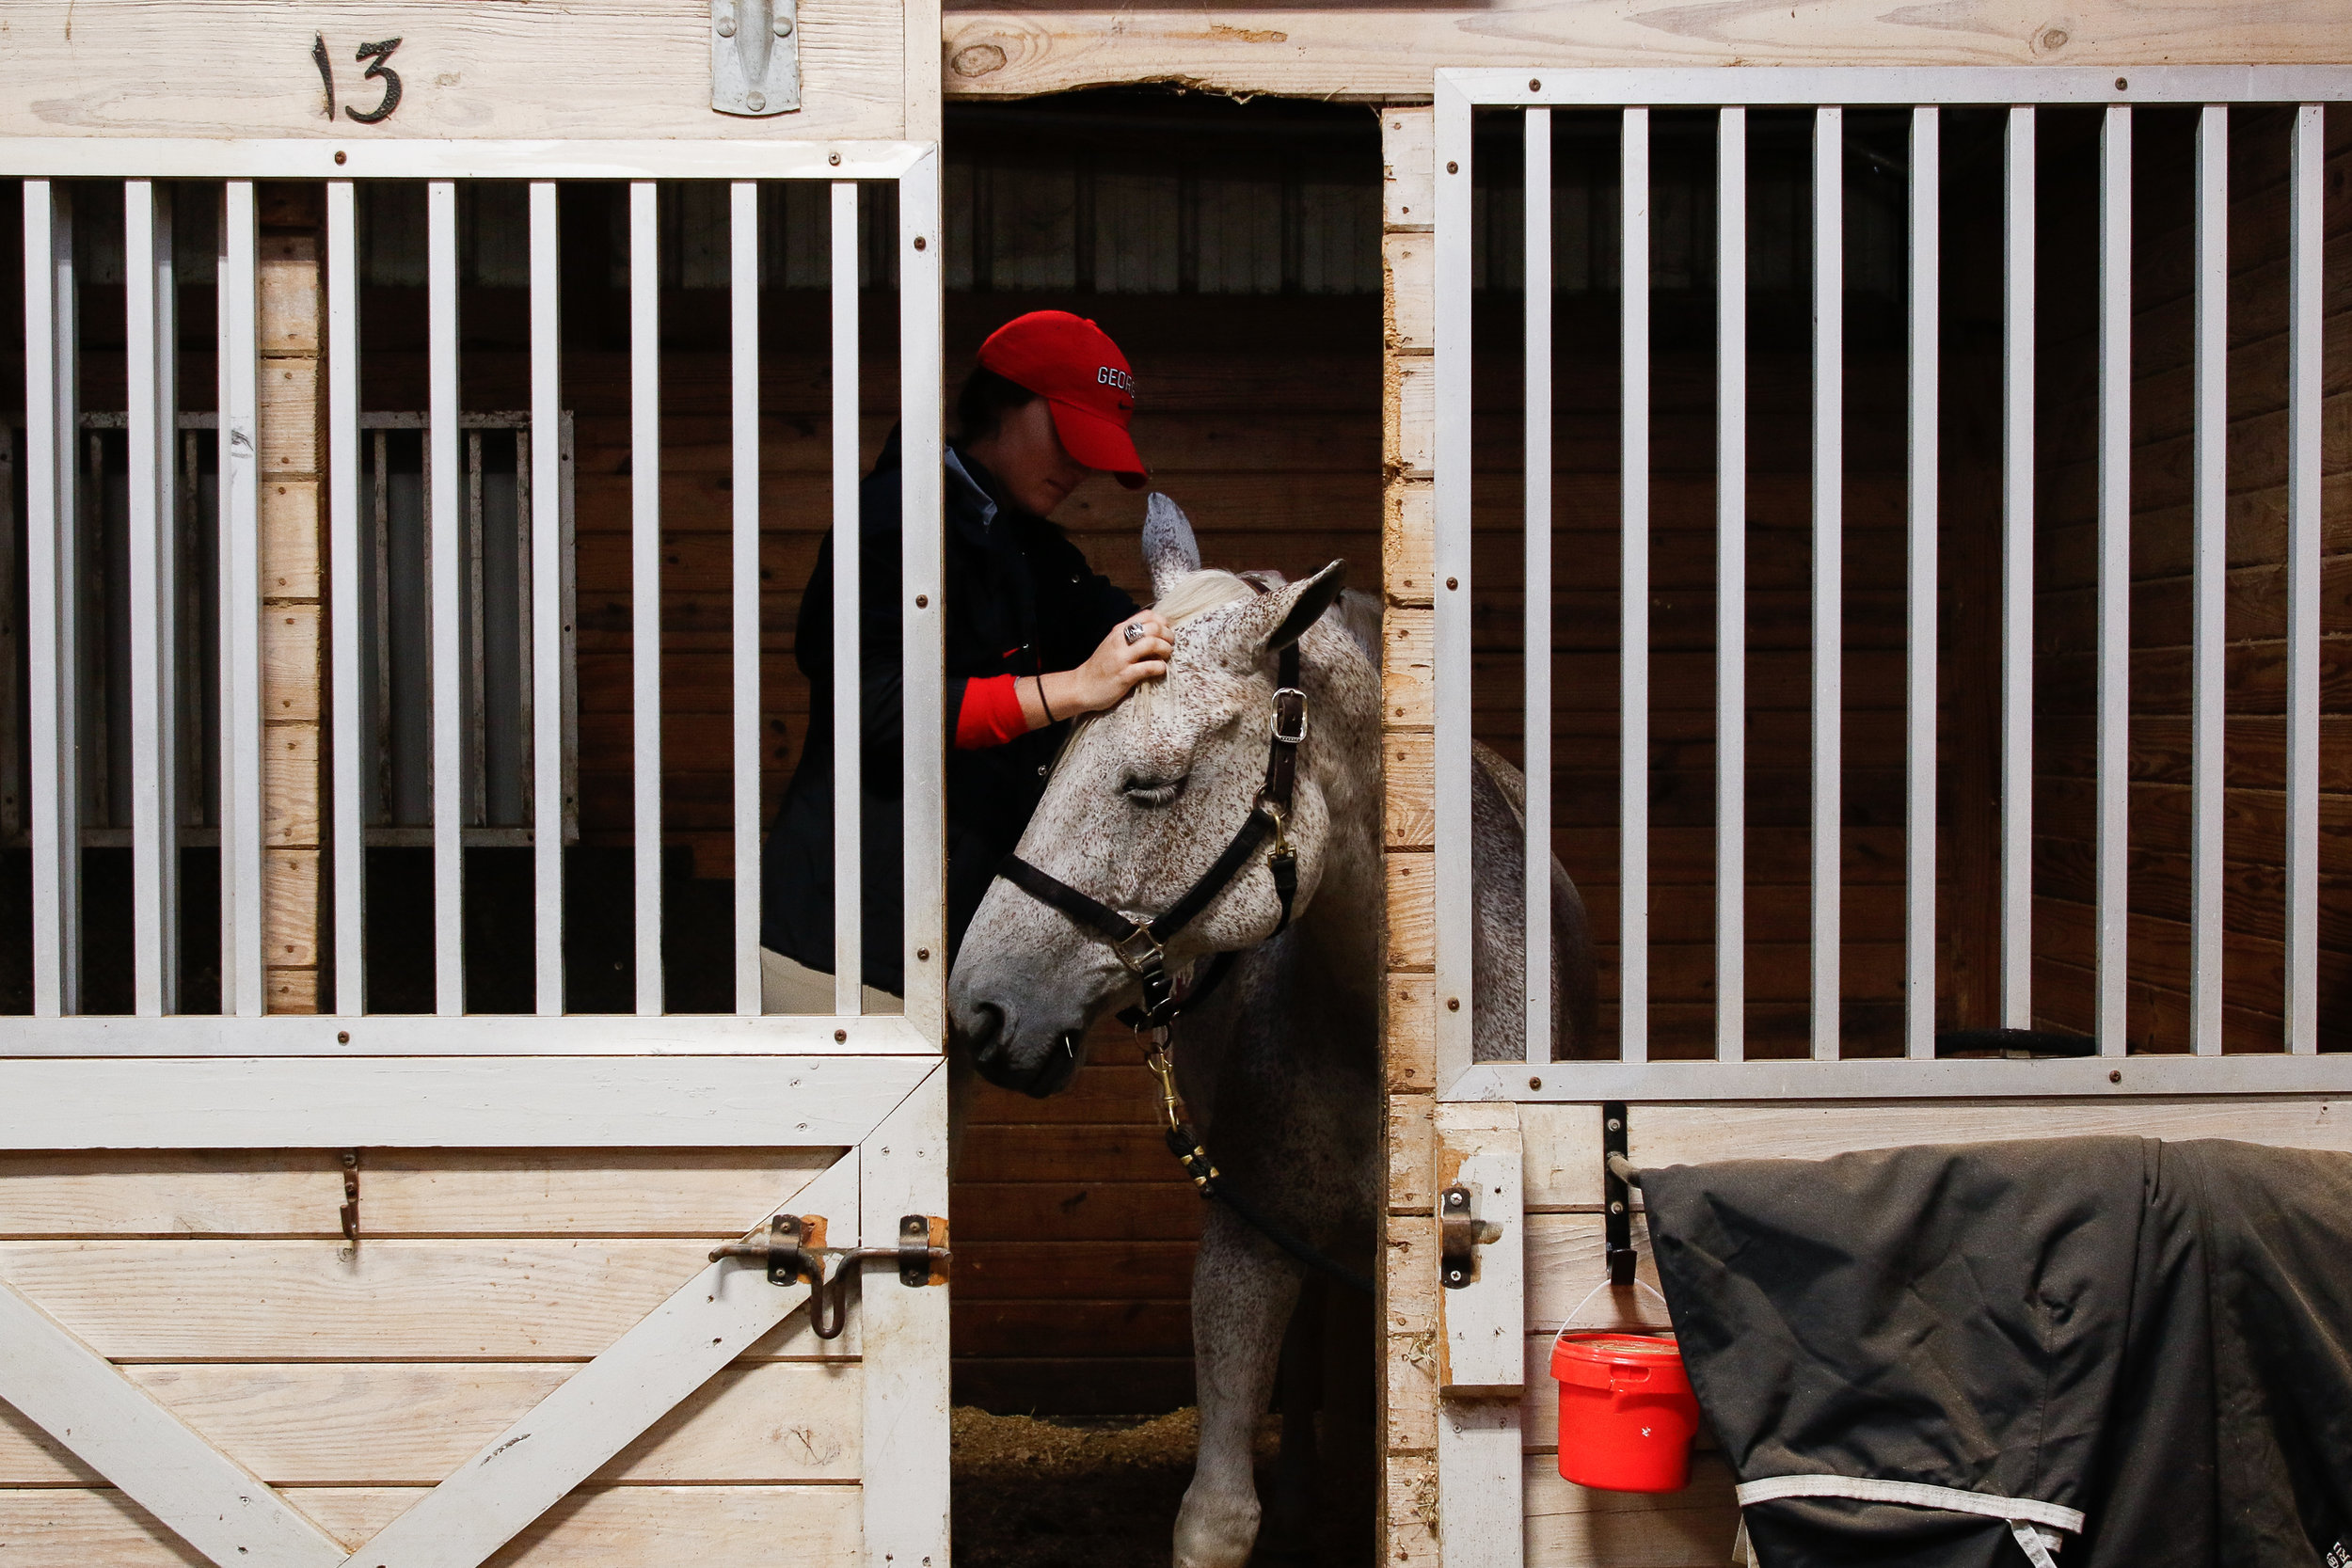 A member of the Georgia Equestrian team attempts to calm George the horse in order to continue to braid his hair before a match in Bishop, Ga., on Friday, Nov. 9, 2018. Before every meet, the team of 66 riders gather in the early morning hours to prepare the horses.